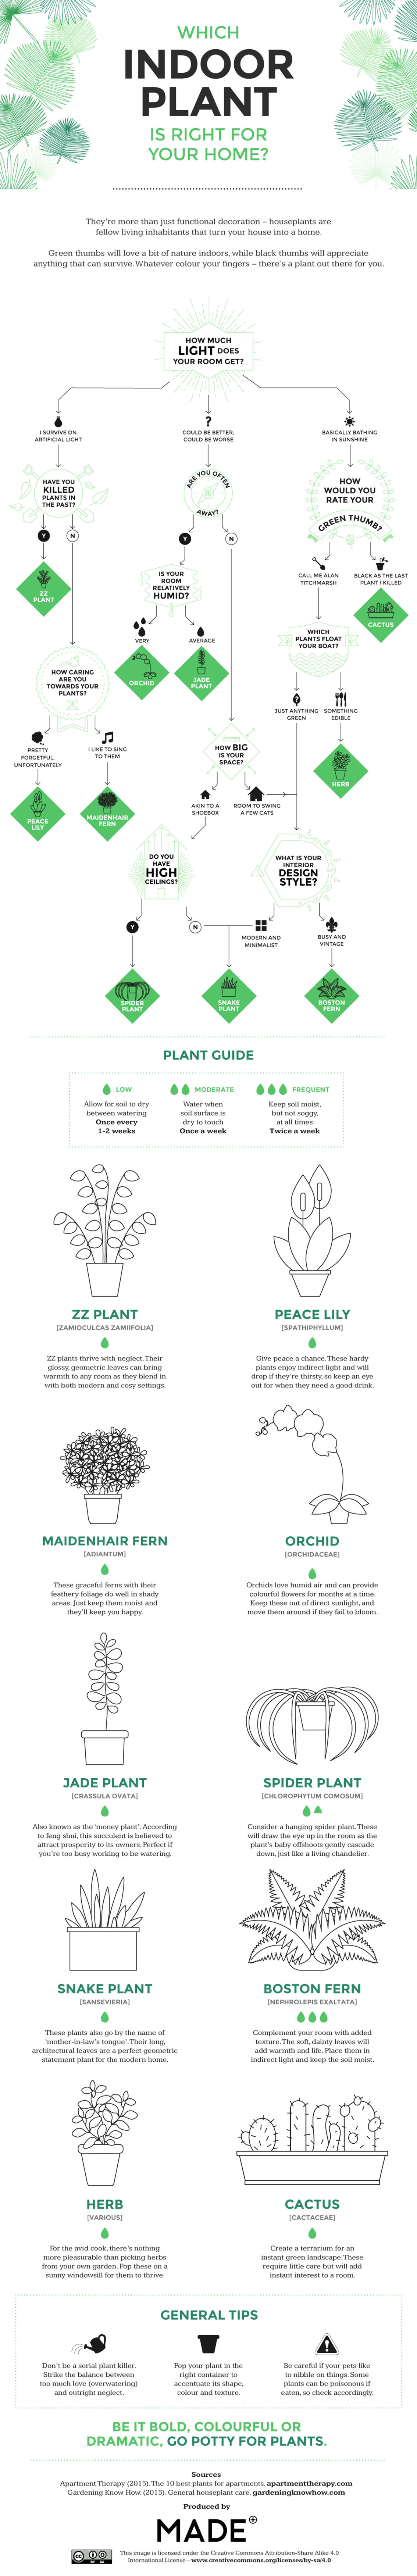 Which Types of Houseplants are Best for Your Home Infographic